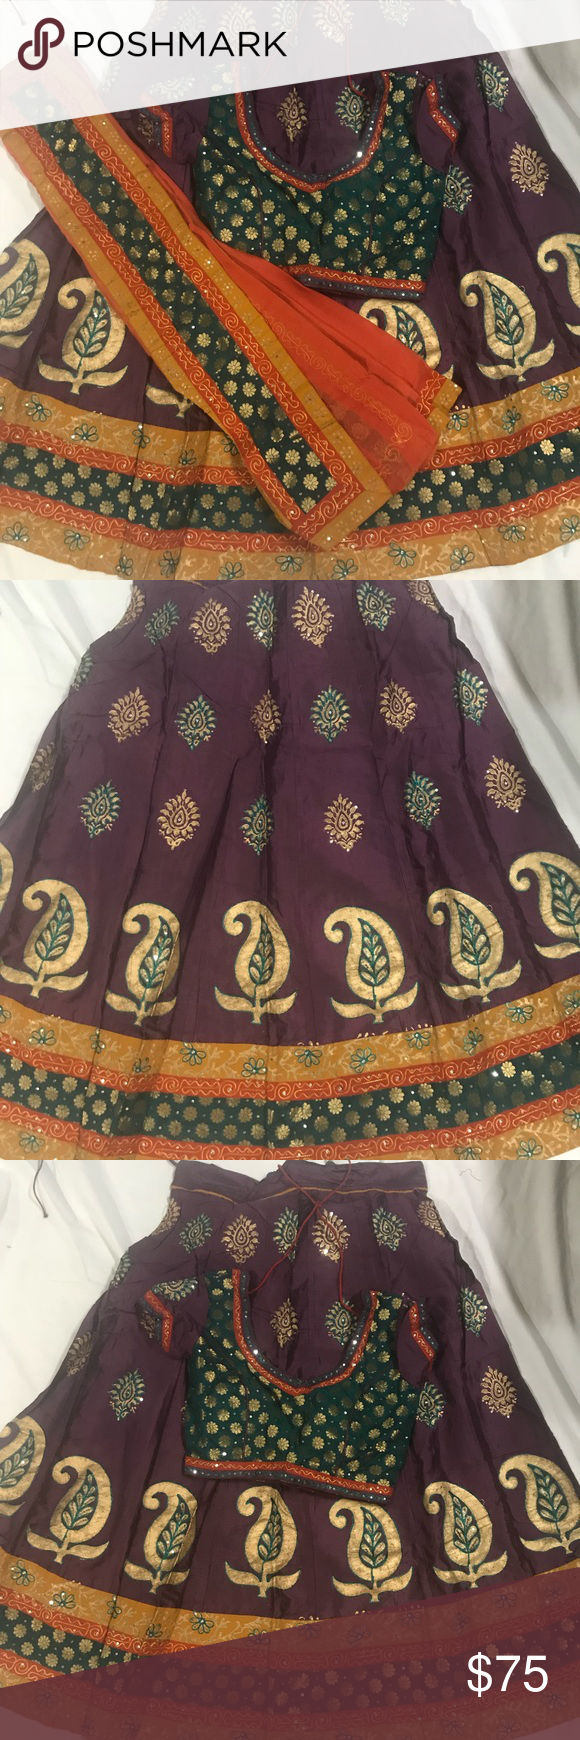 Chaniya choli New size 36 chaniya choli... Dresses #chaniyacholi